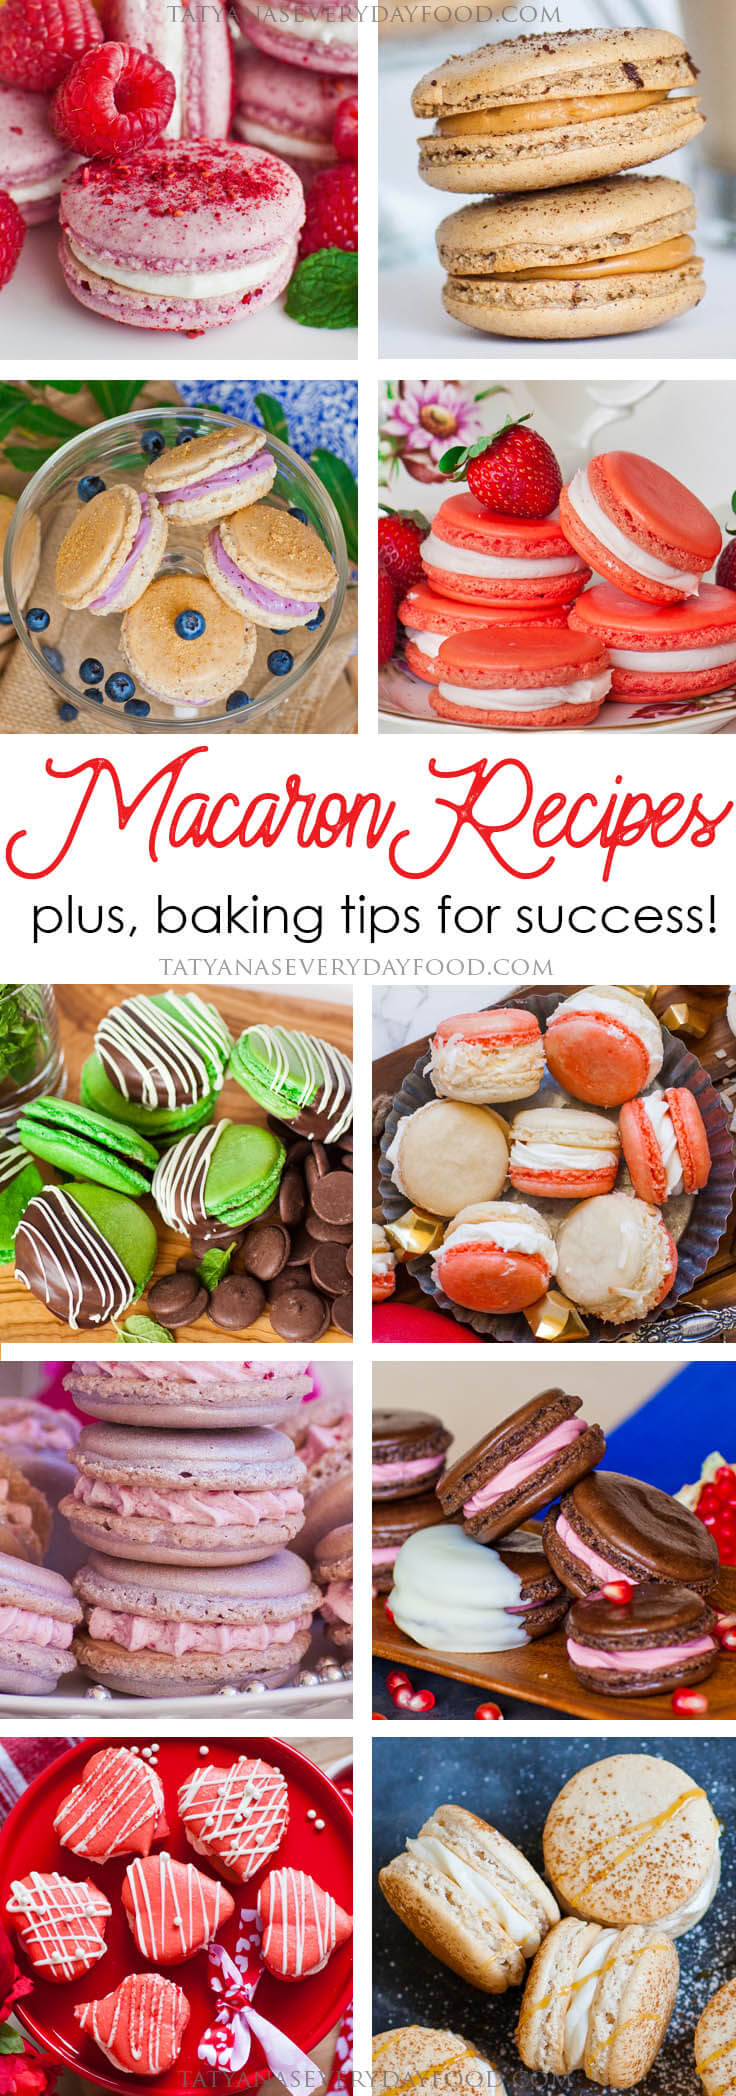 Best Macaron Recipes, plus baking tips for success!